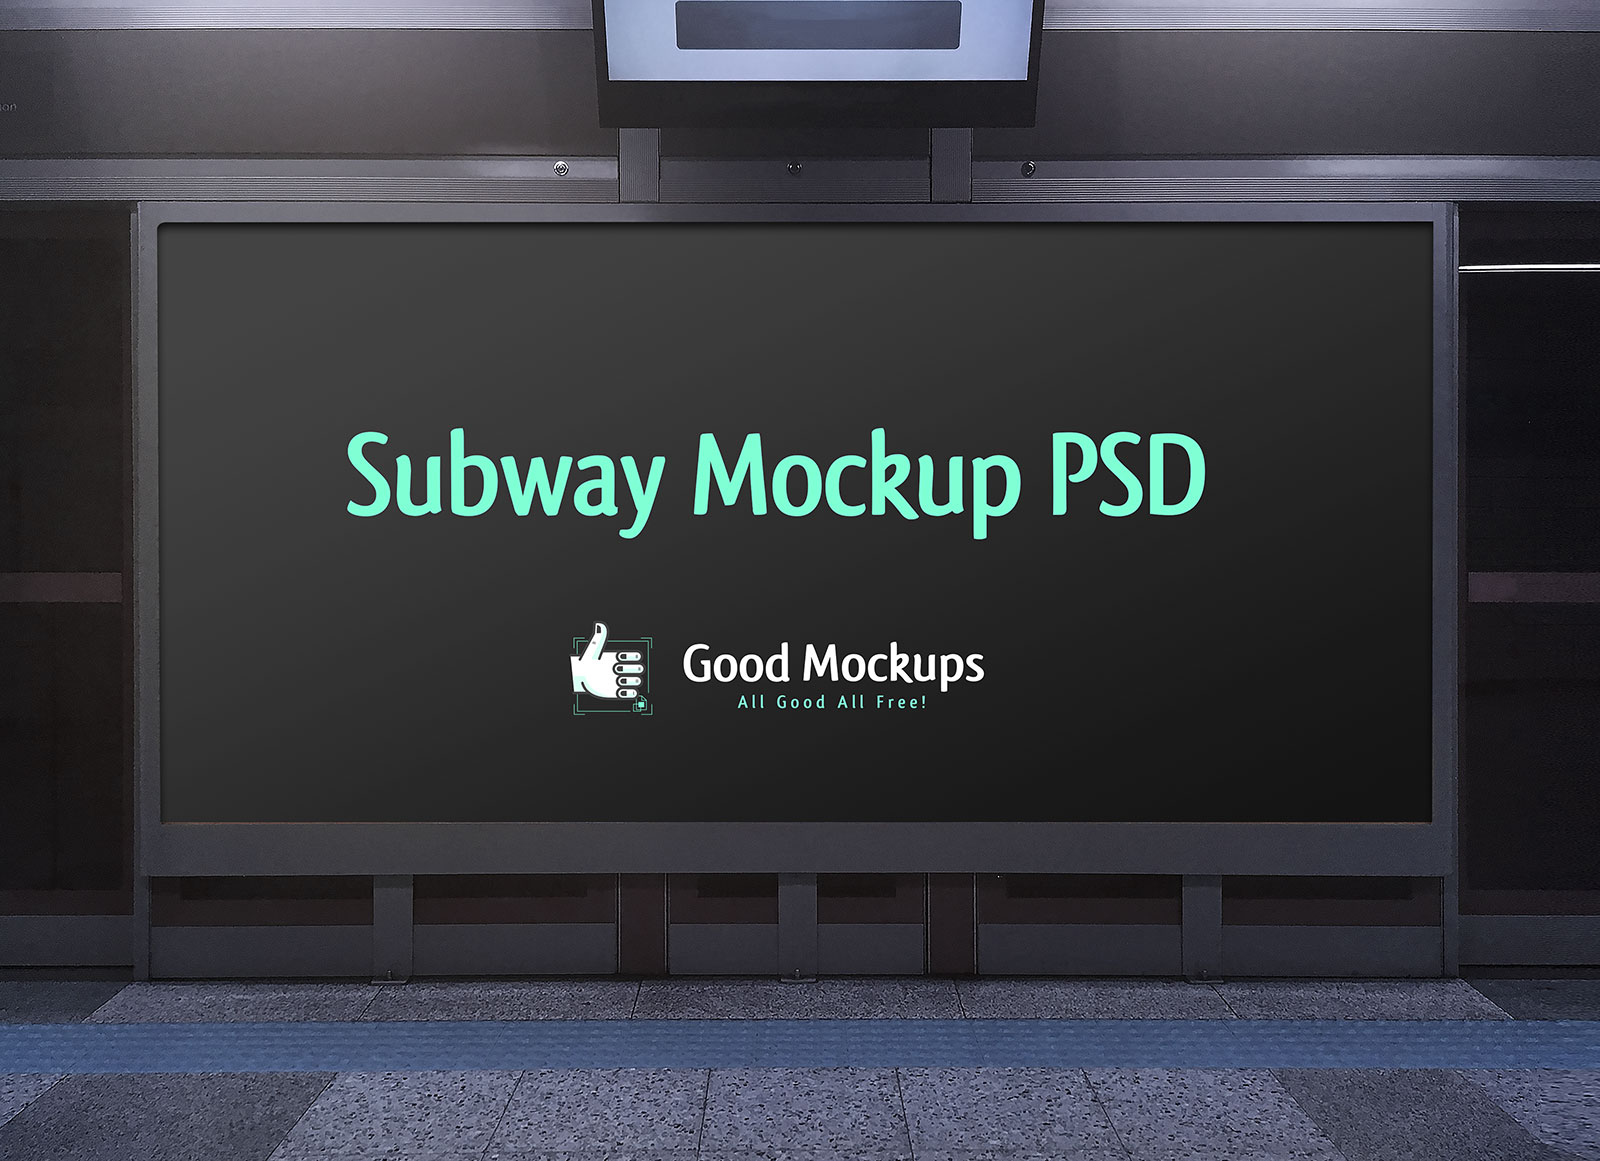 free outdoor advertising subway hoarding mockup psd file